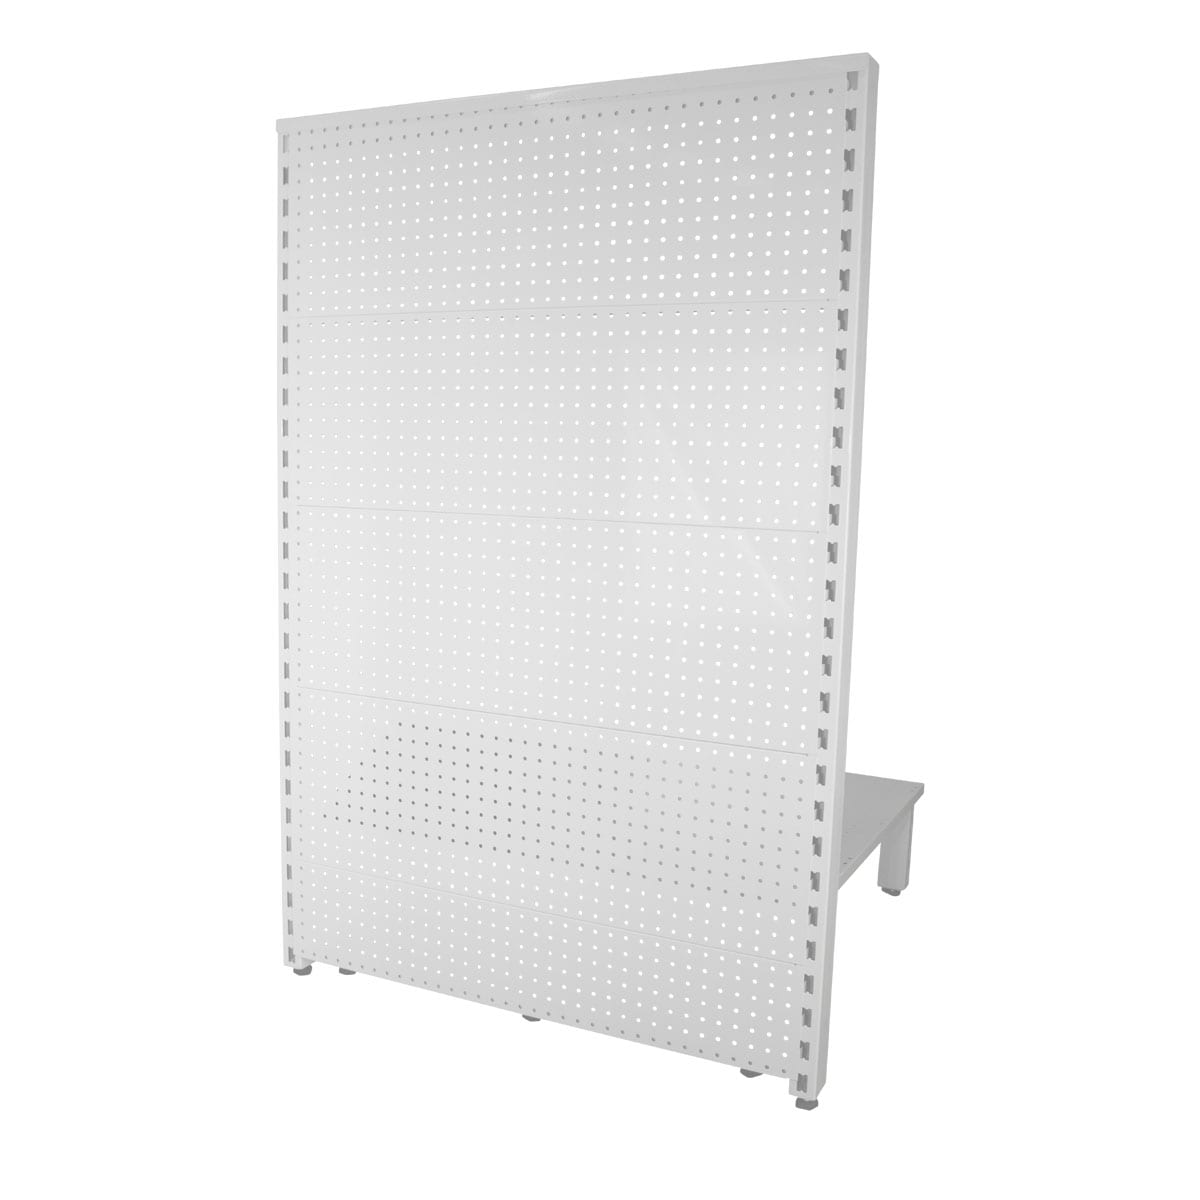 feature end promotional bay gondola shelving